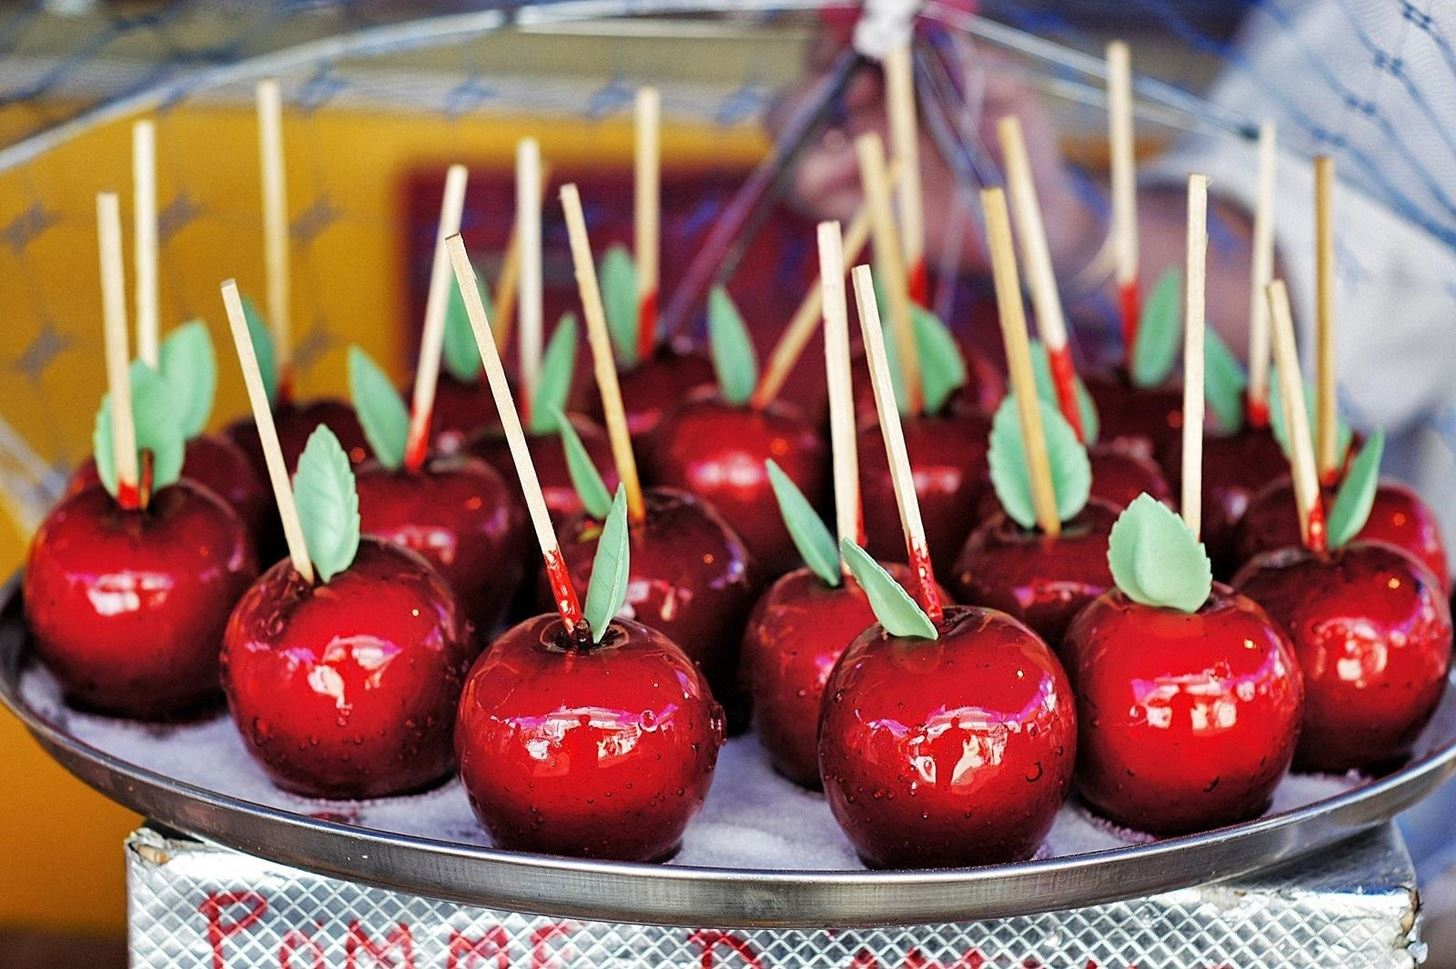 Candy vs. Caramel: Which Halloween Apple Reigns Supreme? [DEBATE]